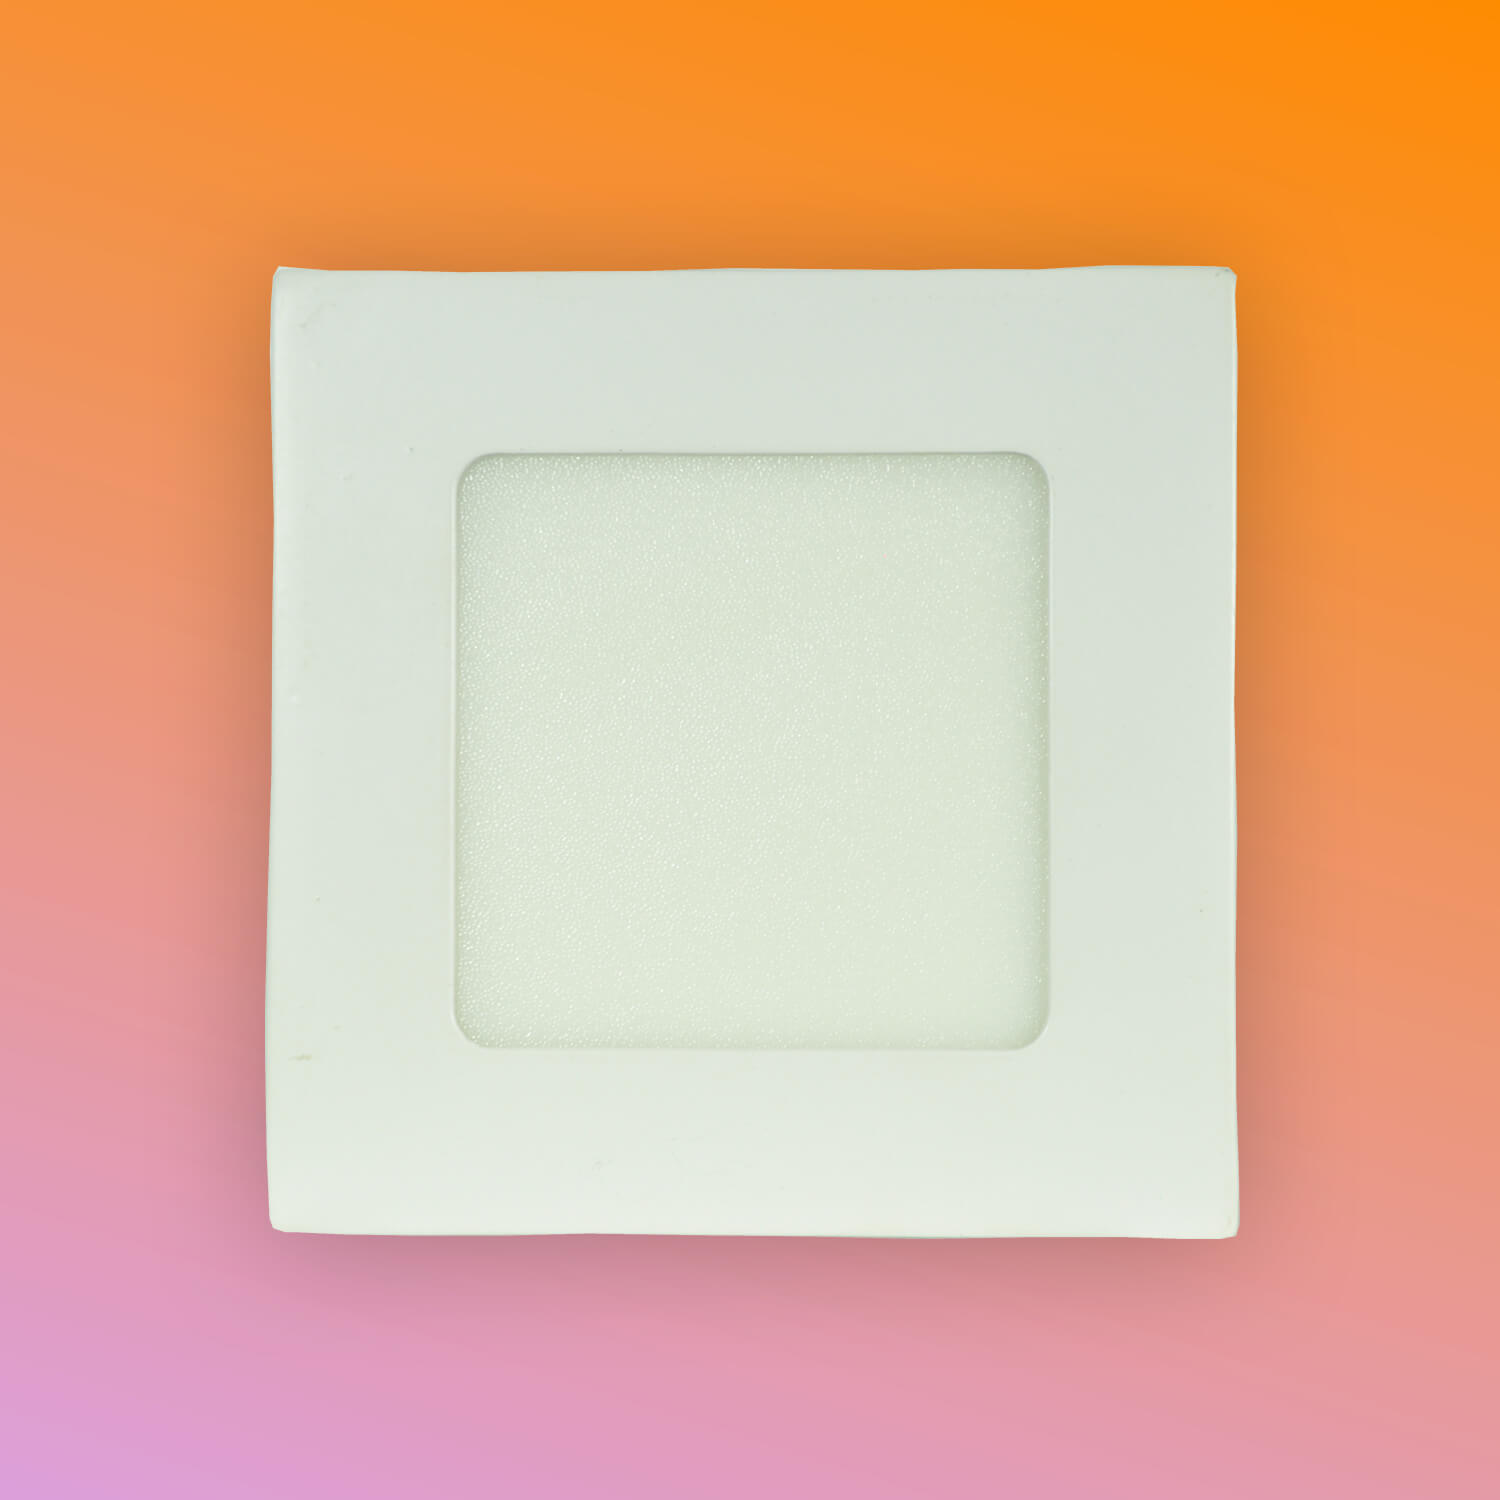 LED Slim Panel Light Square -COOOLED